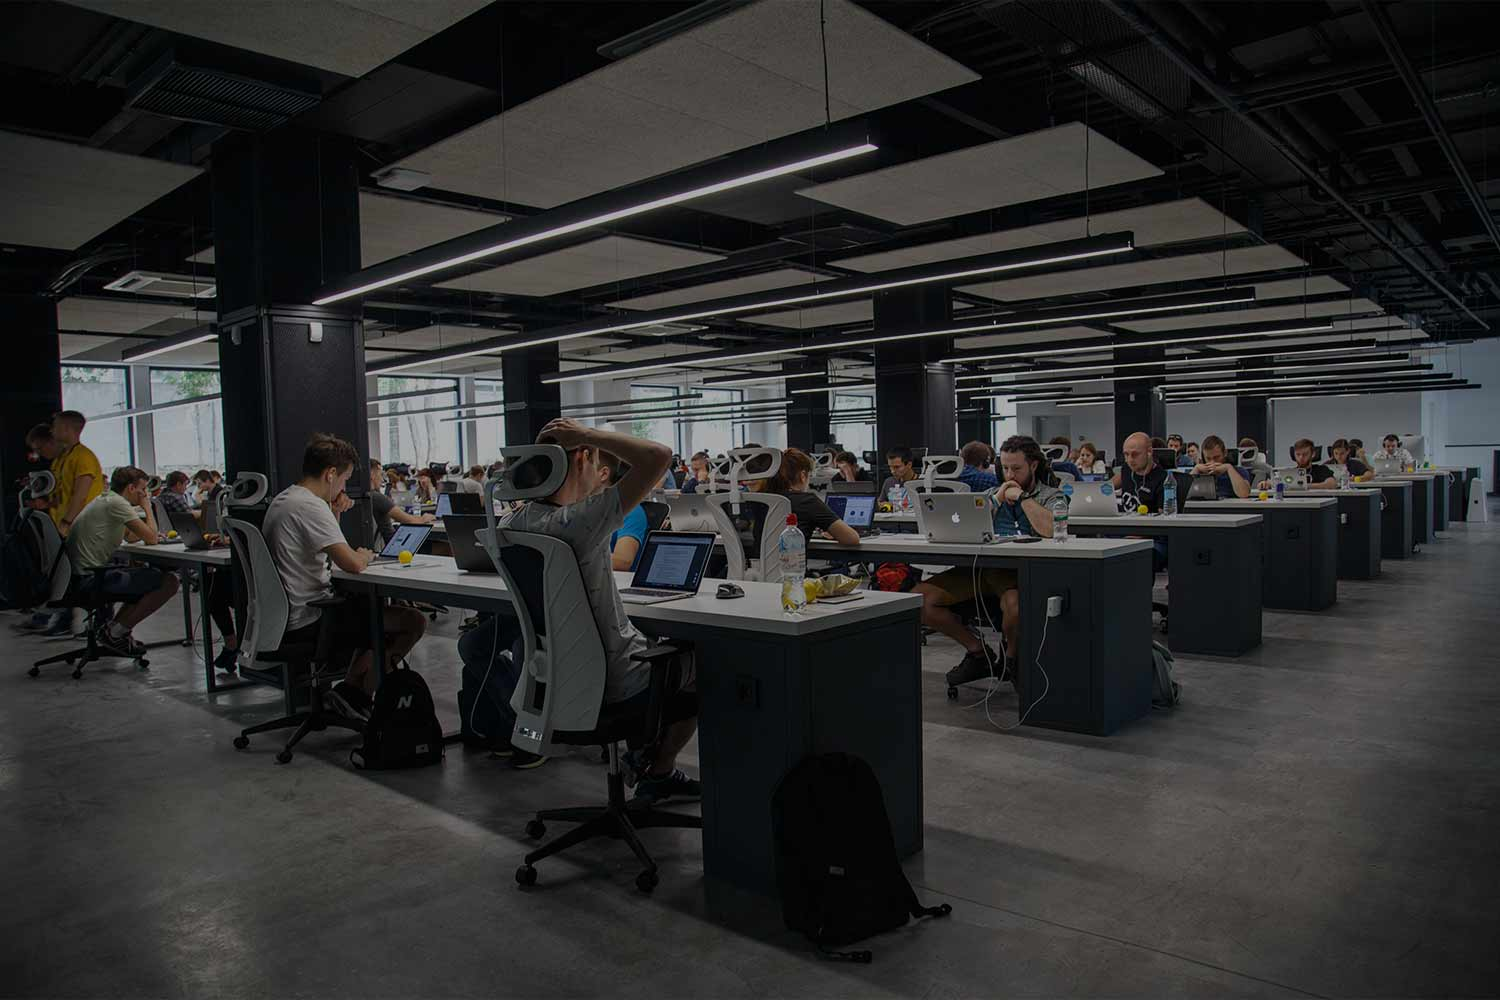 7 things you learn when you work in an office